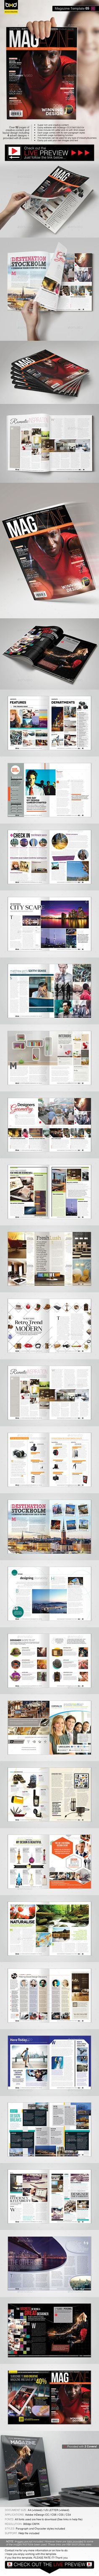 Magazine Template - InDesign 52 Page Layout V4 by BoxedCreative This is a professional magazine/newsletter InDesign template that can be used for any type of industry. The clean, crisp, clear an